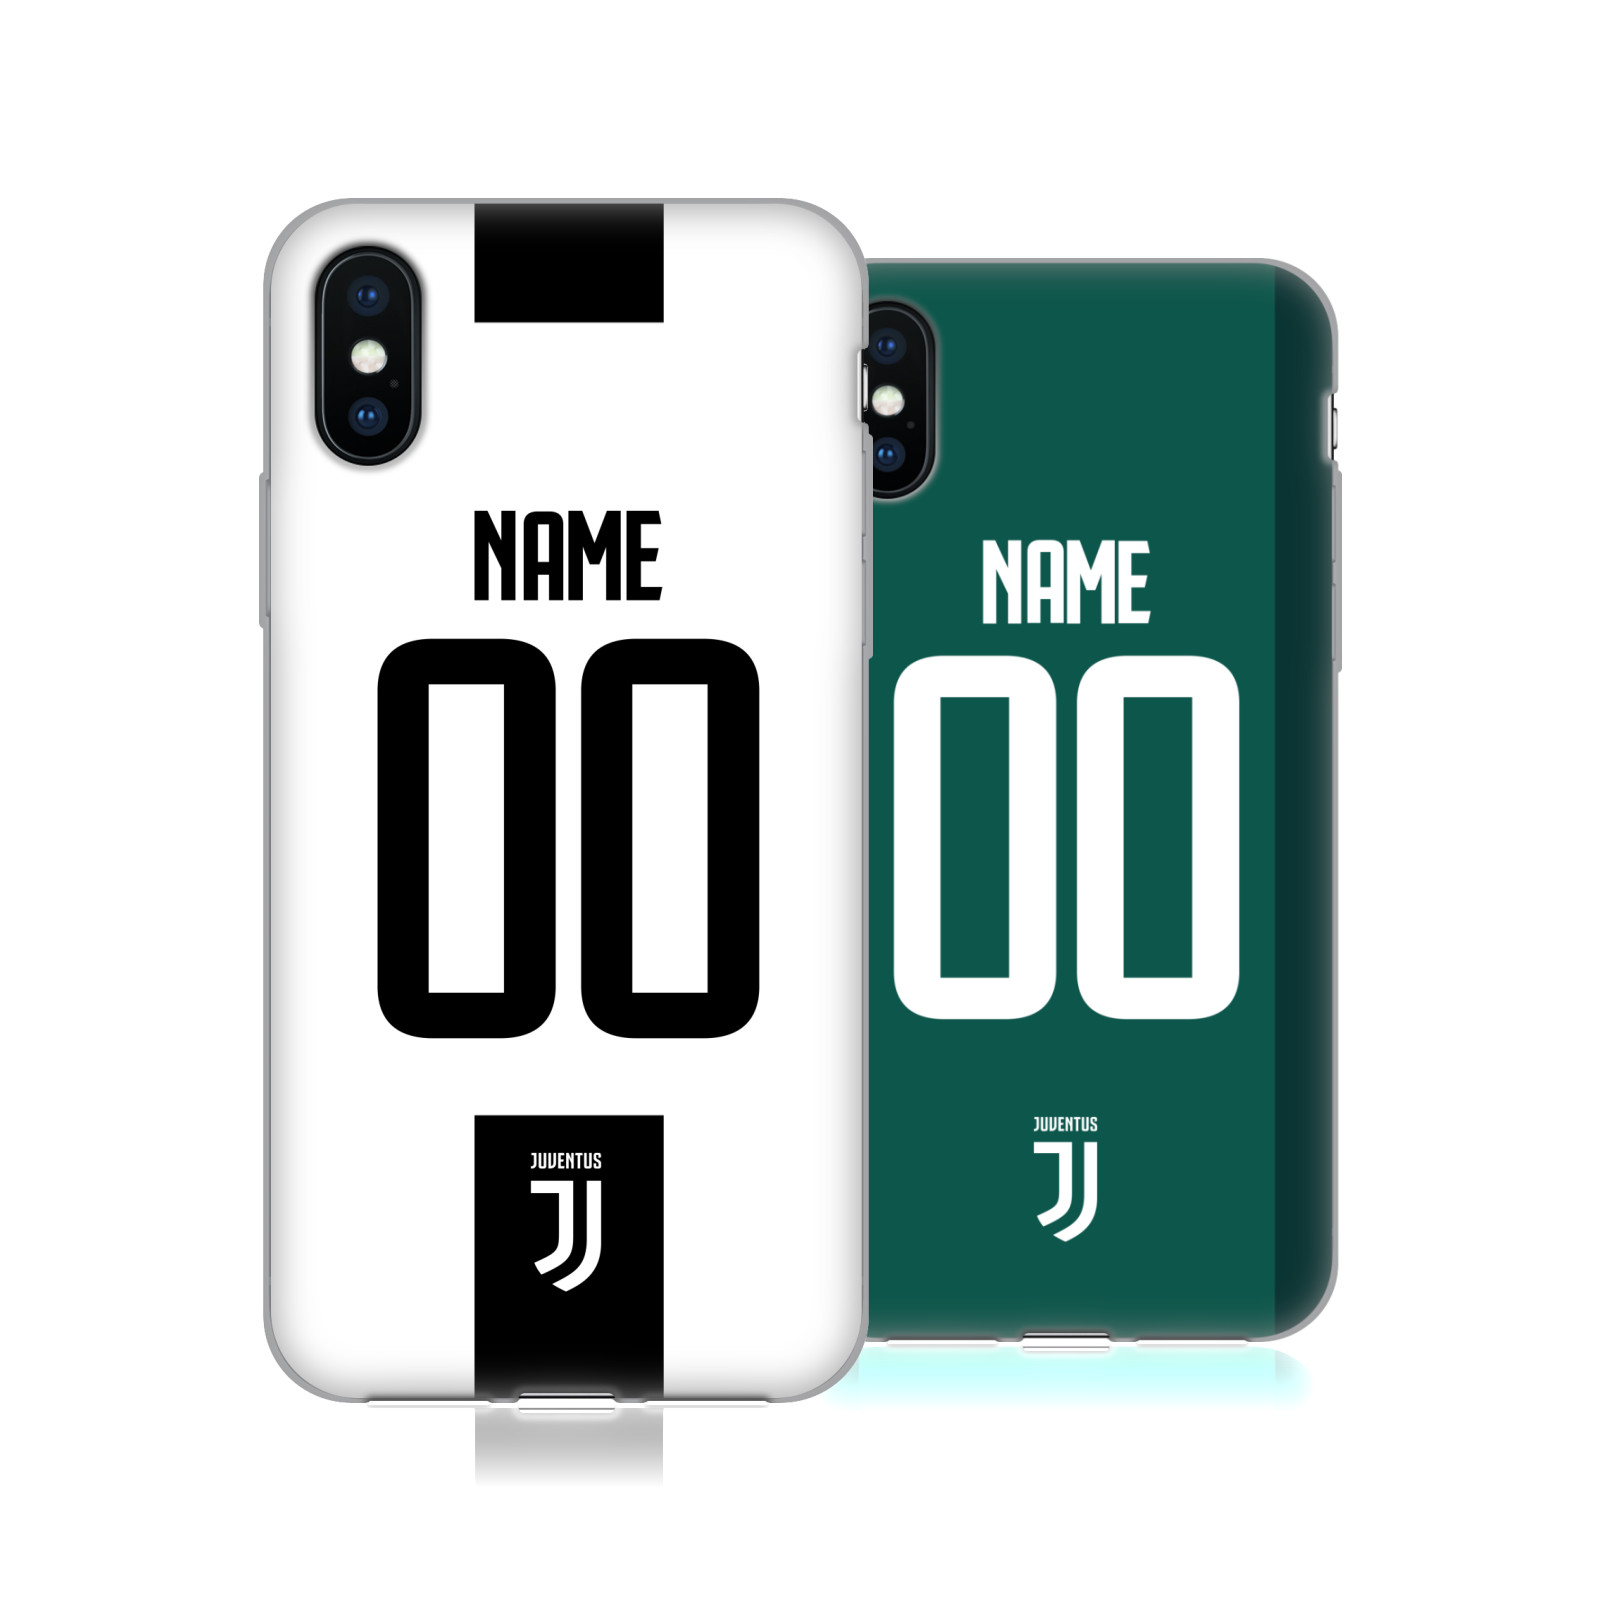 Juventus Football Club <!--translate-lineup-->2018/19 Race Kit Personalised<!--translate-lineup-->